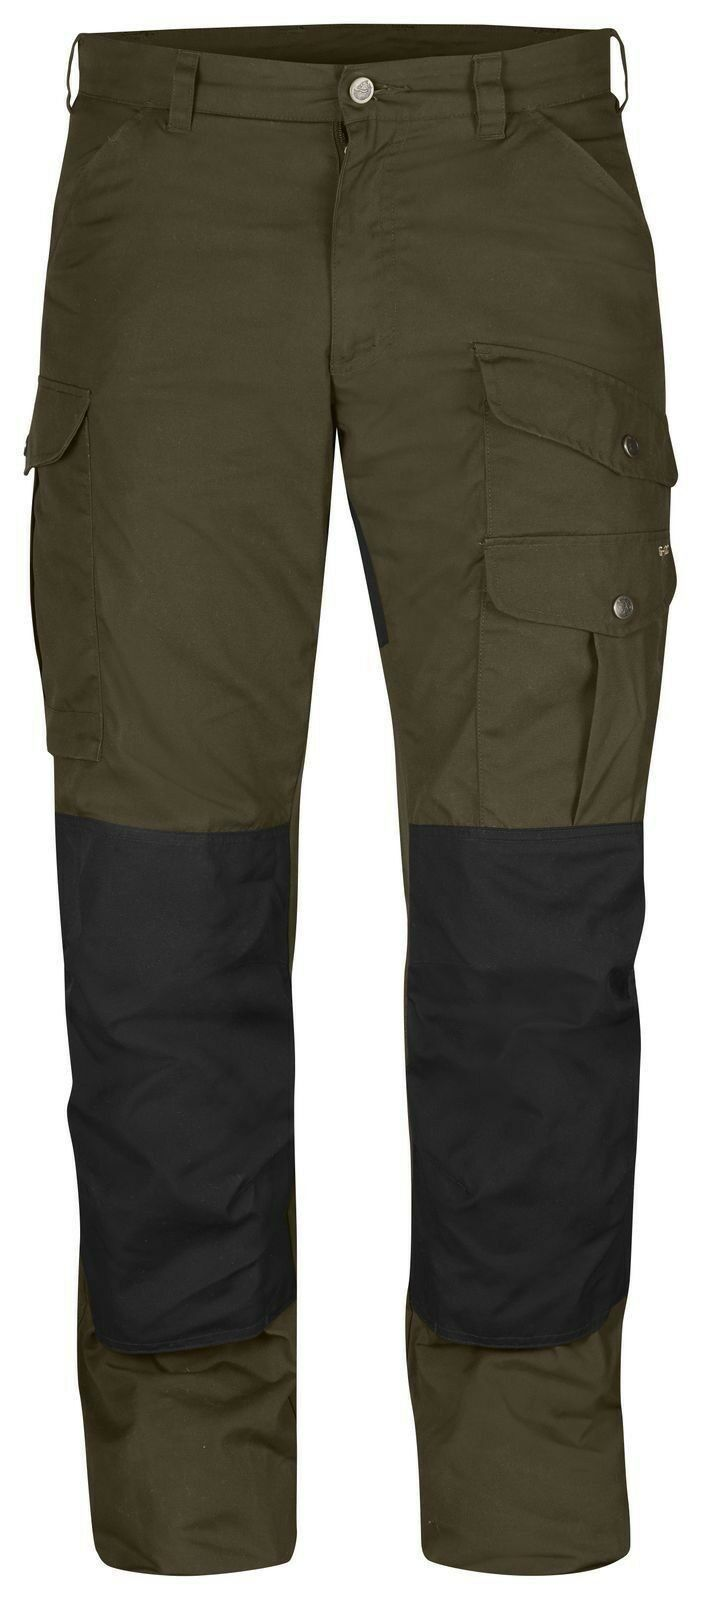 Fjäll Räven Barents pro Winter Outdoor Trousers Hiking 81144 Gr.54